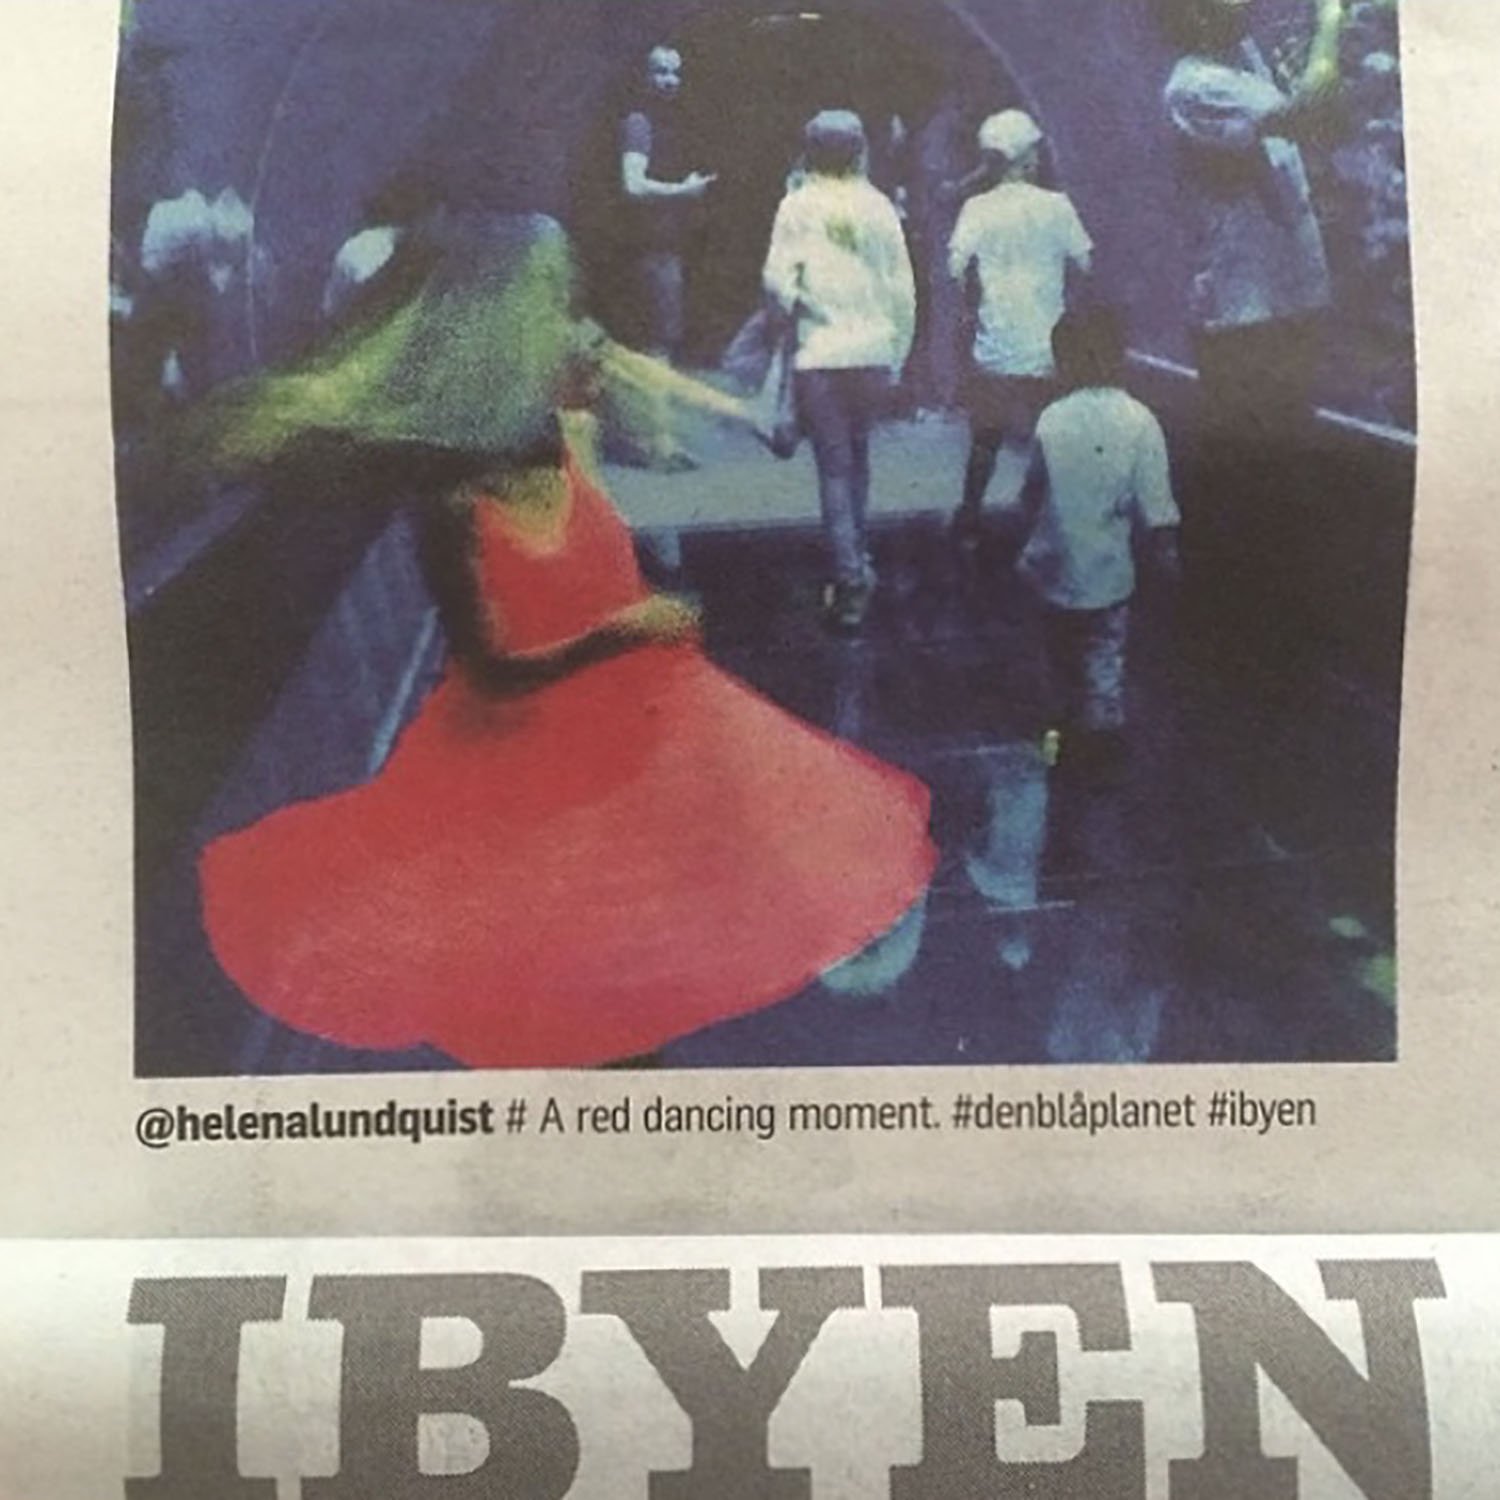 Instagram photo published in Ibyen/Politiken (DK newspaper)